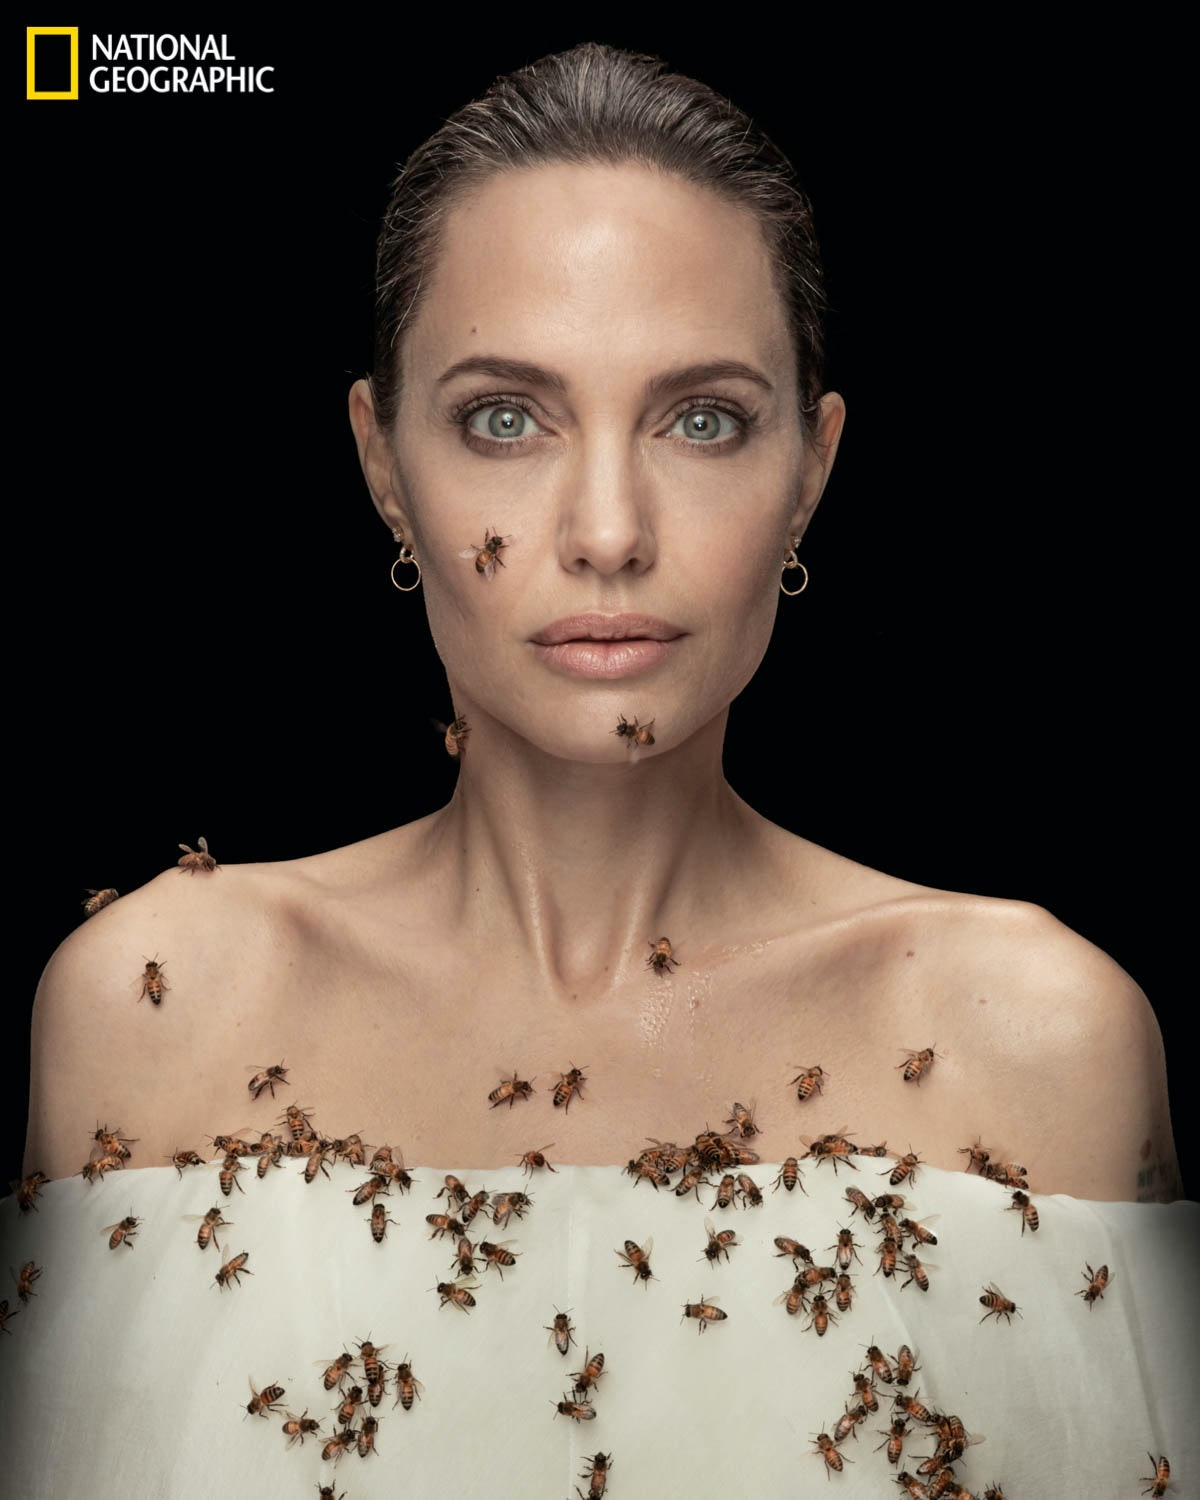 Angelina Jolie covered in bees